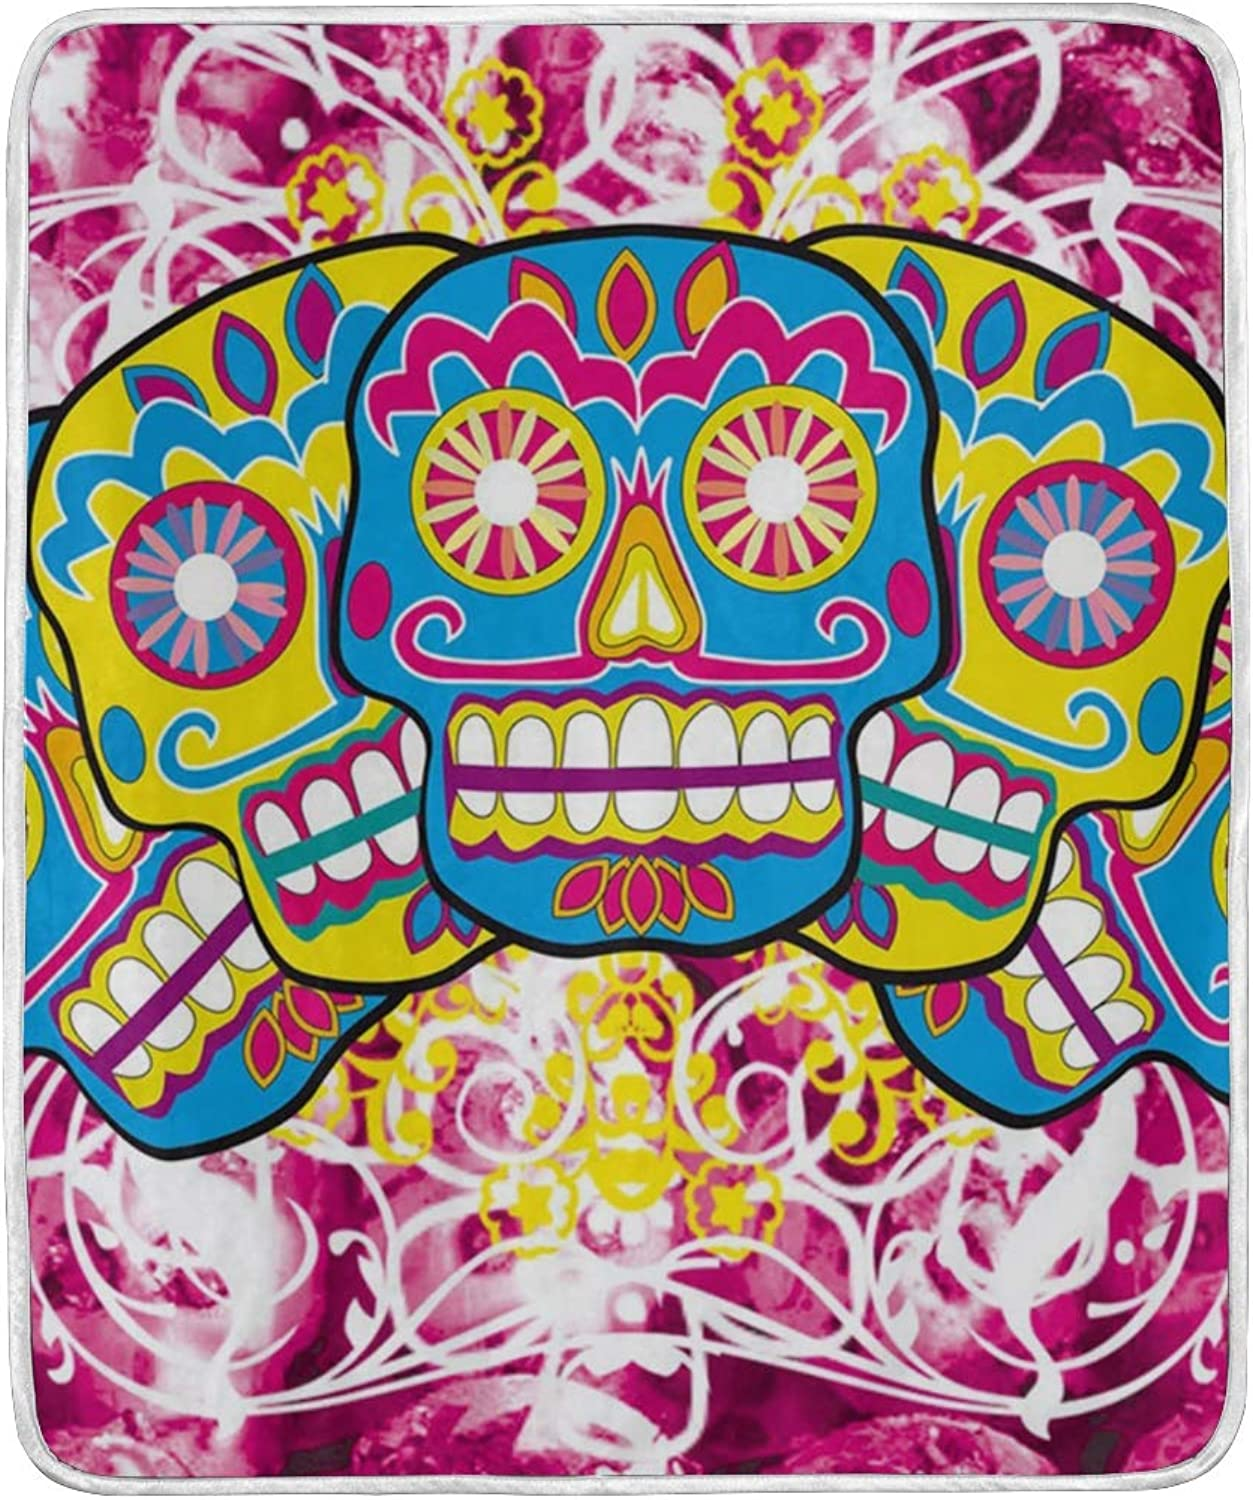 HELVOON Dia De Los Muertos Sugar Skull Throw Blanket Soft Warm Lightweight Blankets for Bed Couch Sofa Travelling Camping 60 x 50 Inch